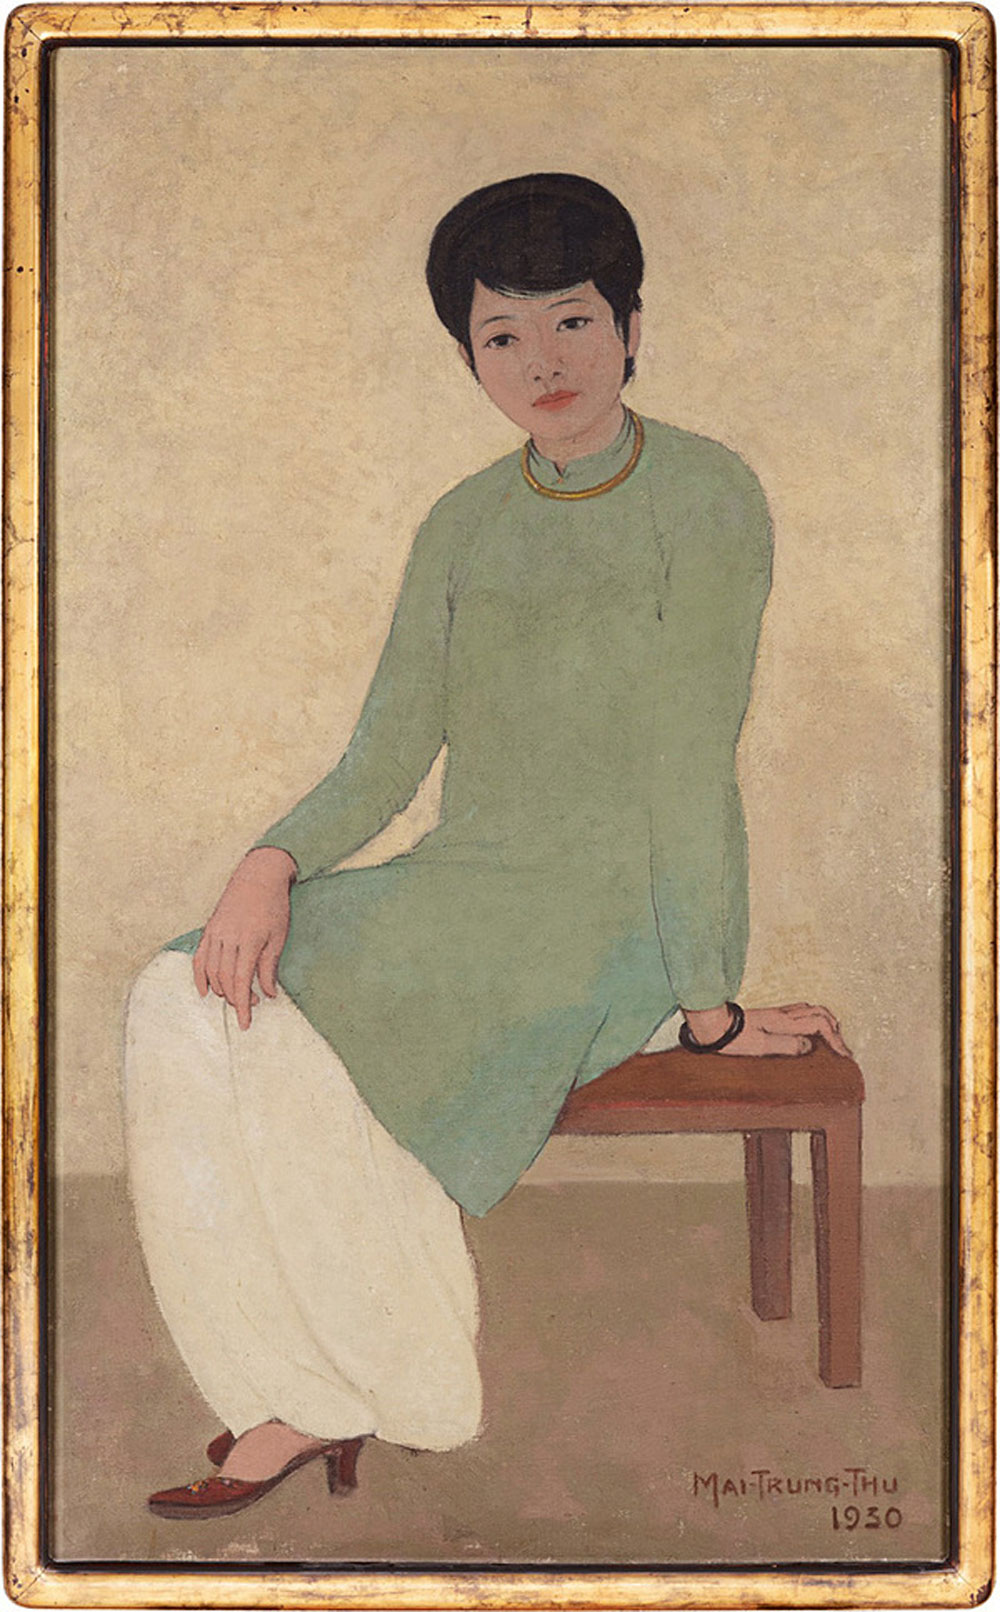 Portrait of Mademoiselle Phuong, Mai Trung Thu, highest ever price, Vietnamese painting, masterpiece